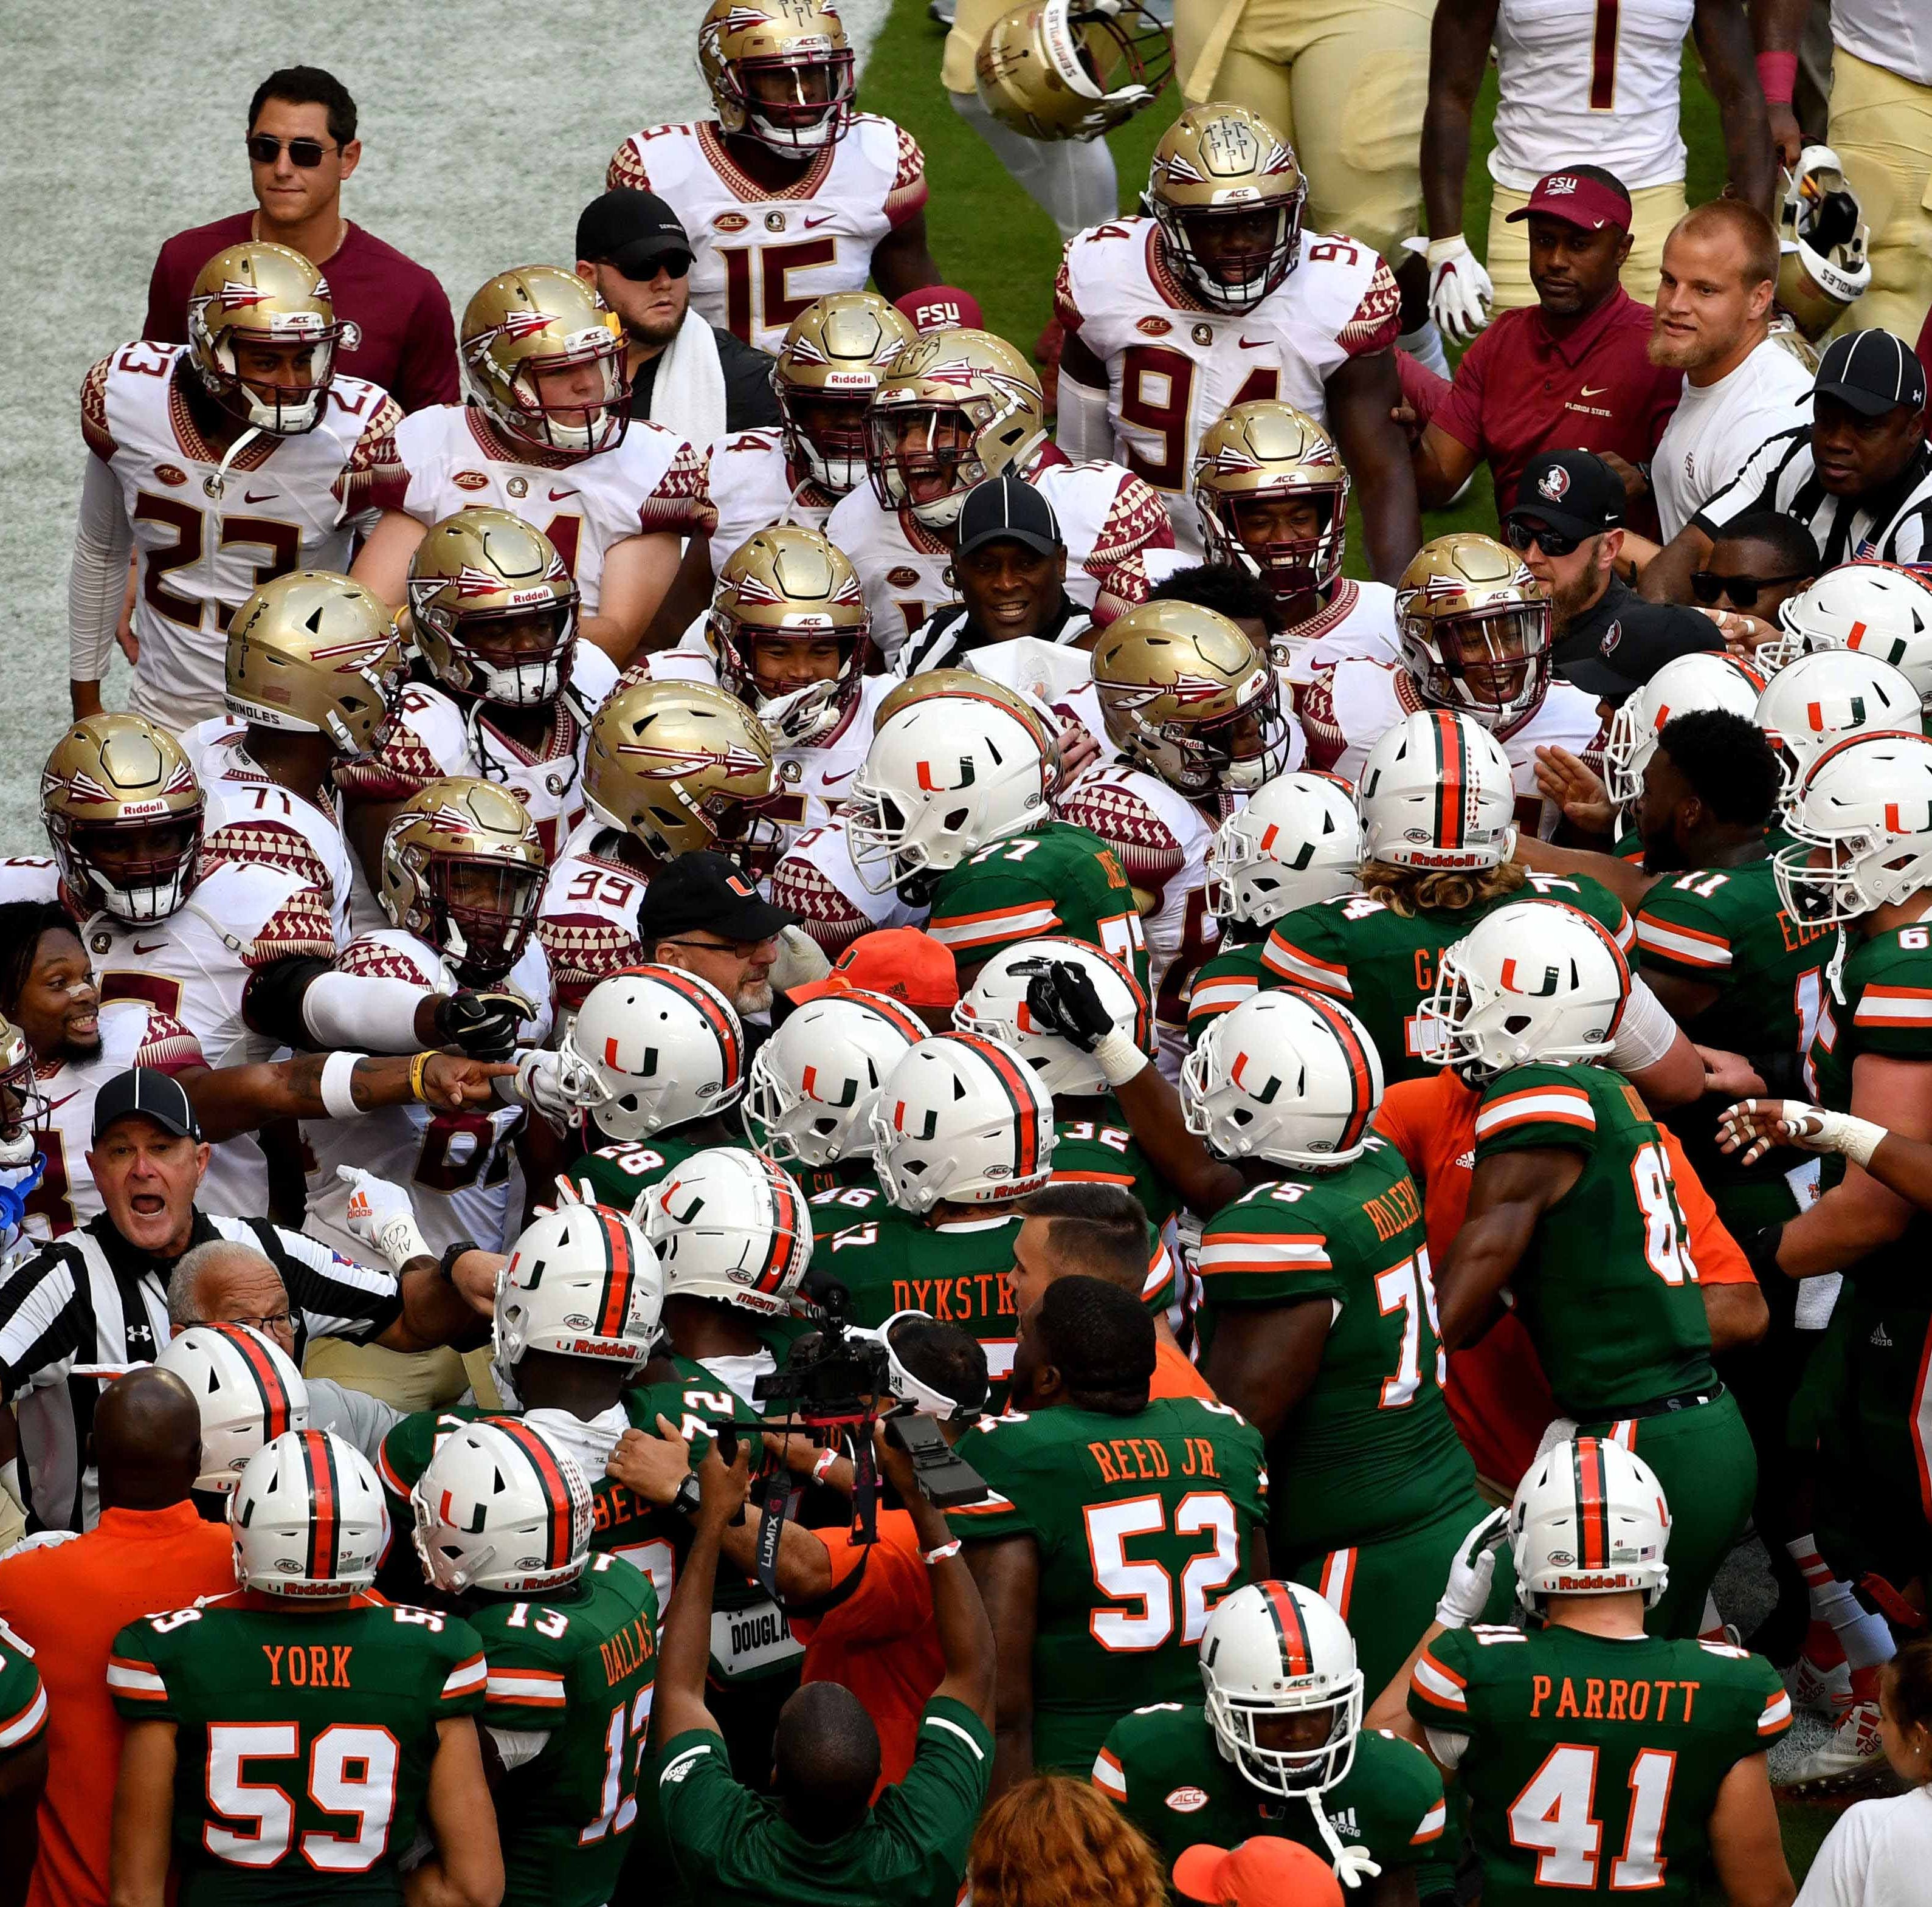 Oct 6, 2018; Miami Gardens, FL, USA; Florida State Seminoles and Miami Hurricanes players react before their game at Hard Rock Stadium. Mandatory Credit: Steve Mitchell-USA TODAY Sports